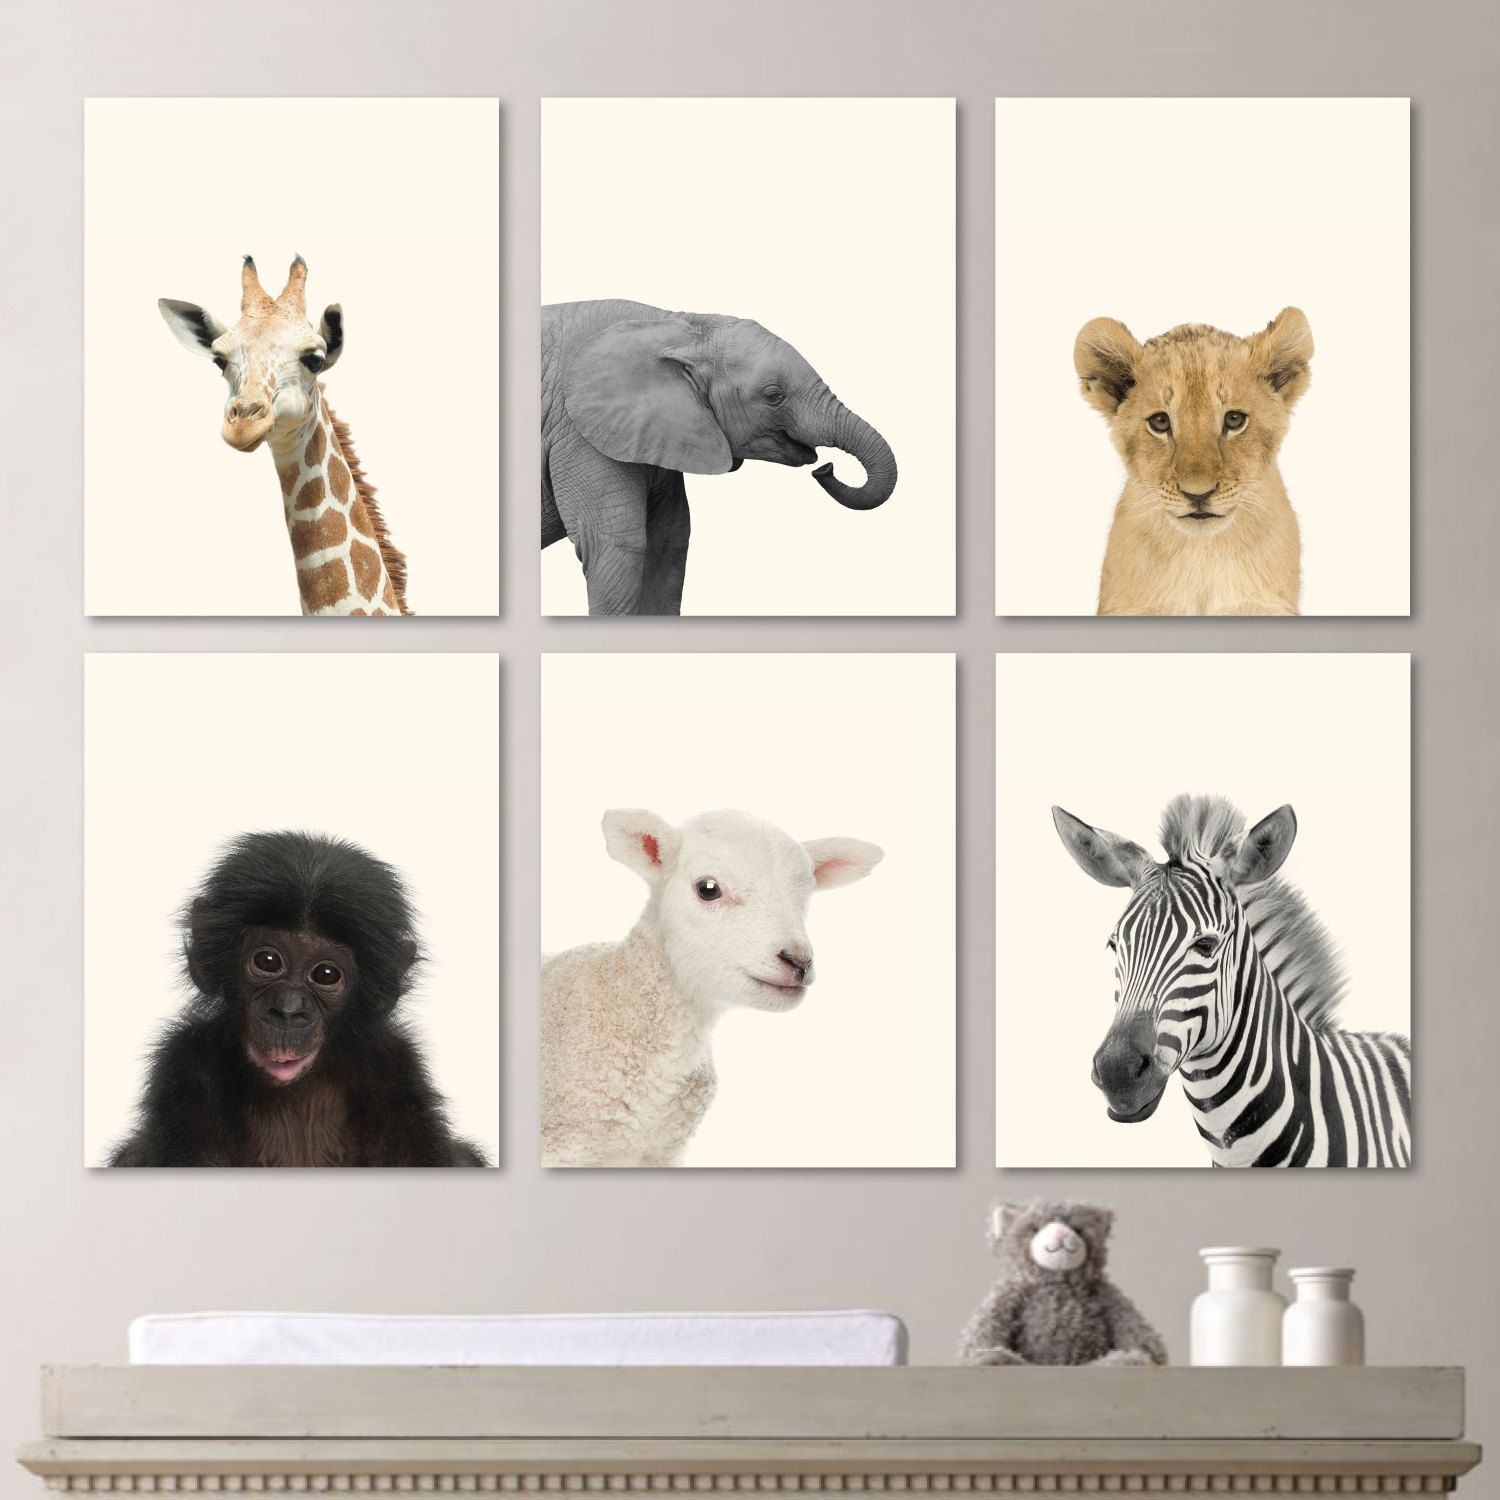 I love this adorable looking real baby animal prints for